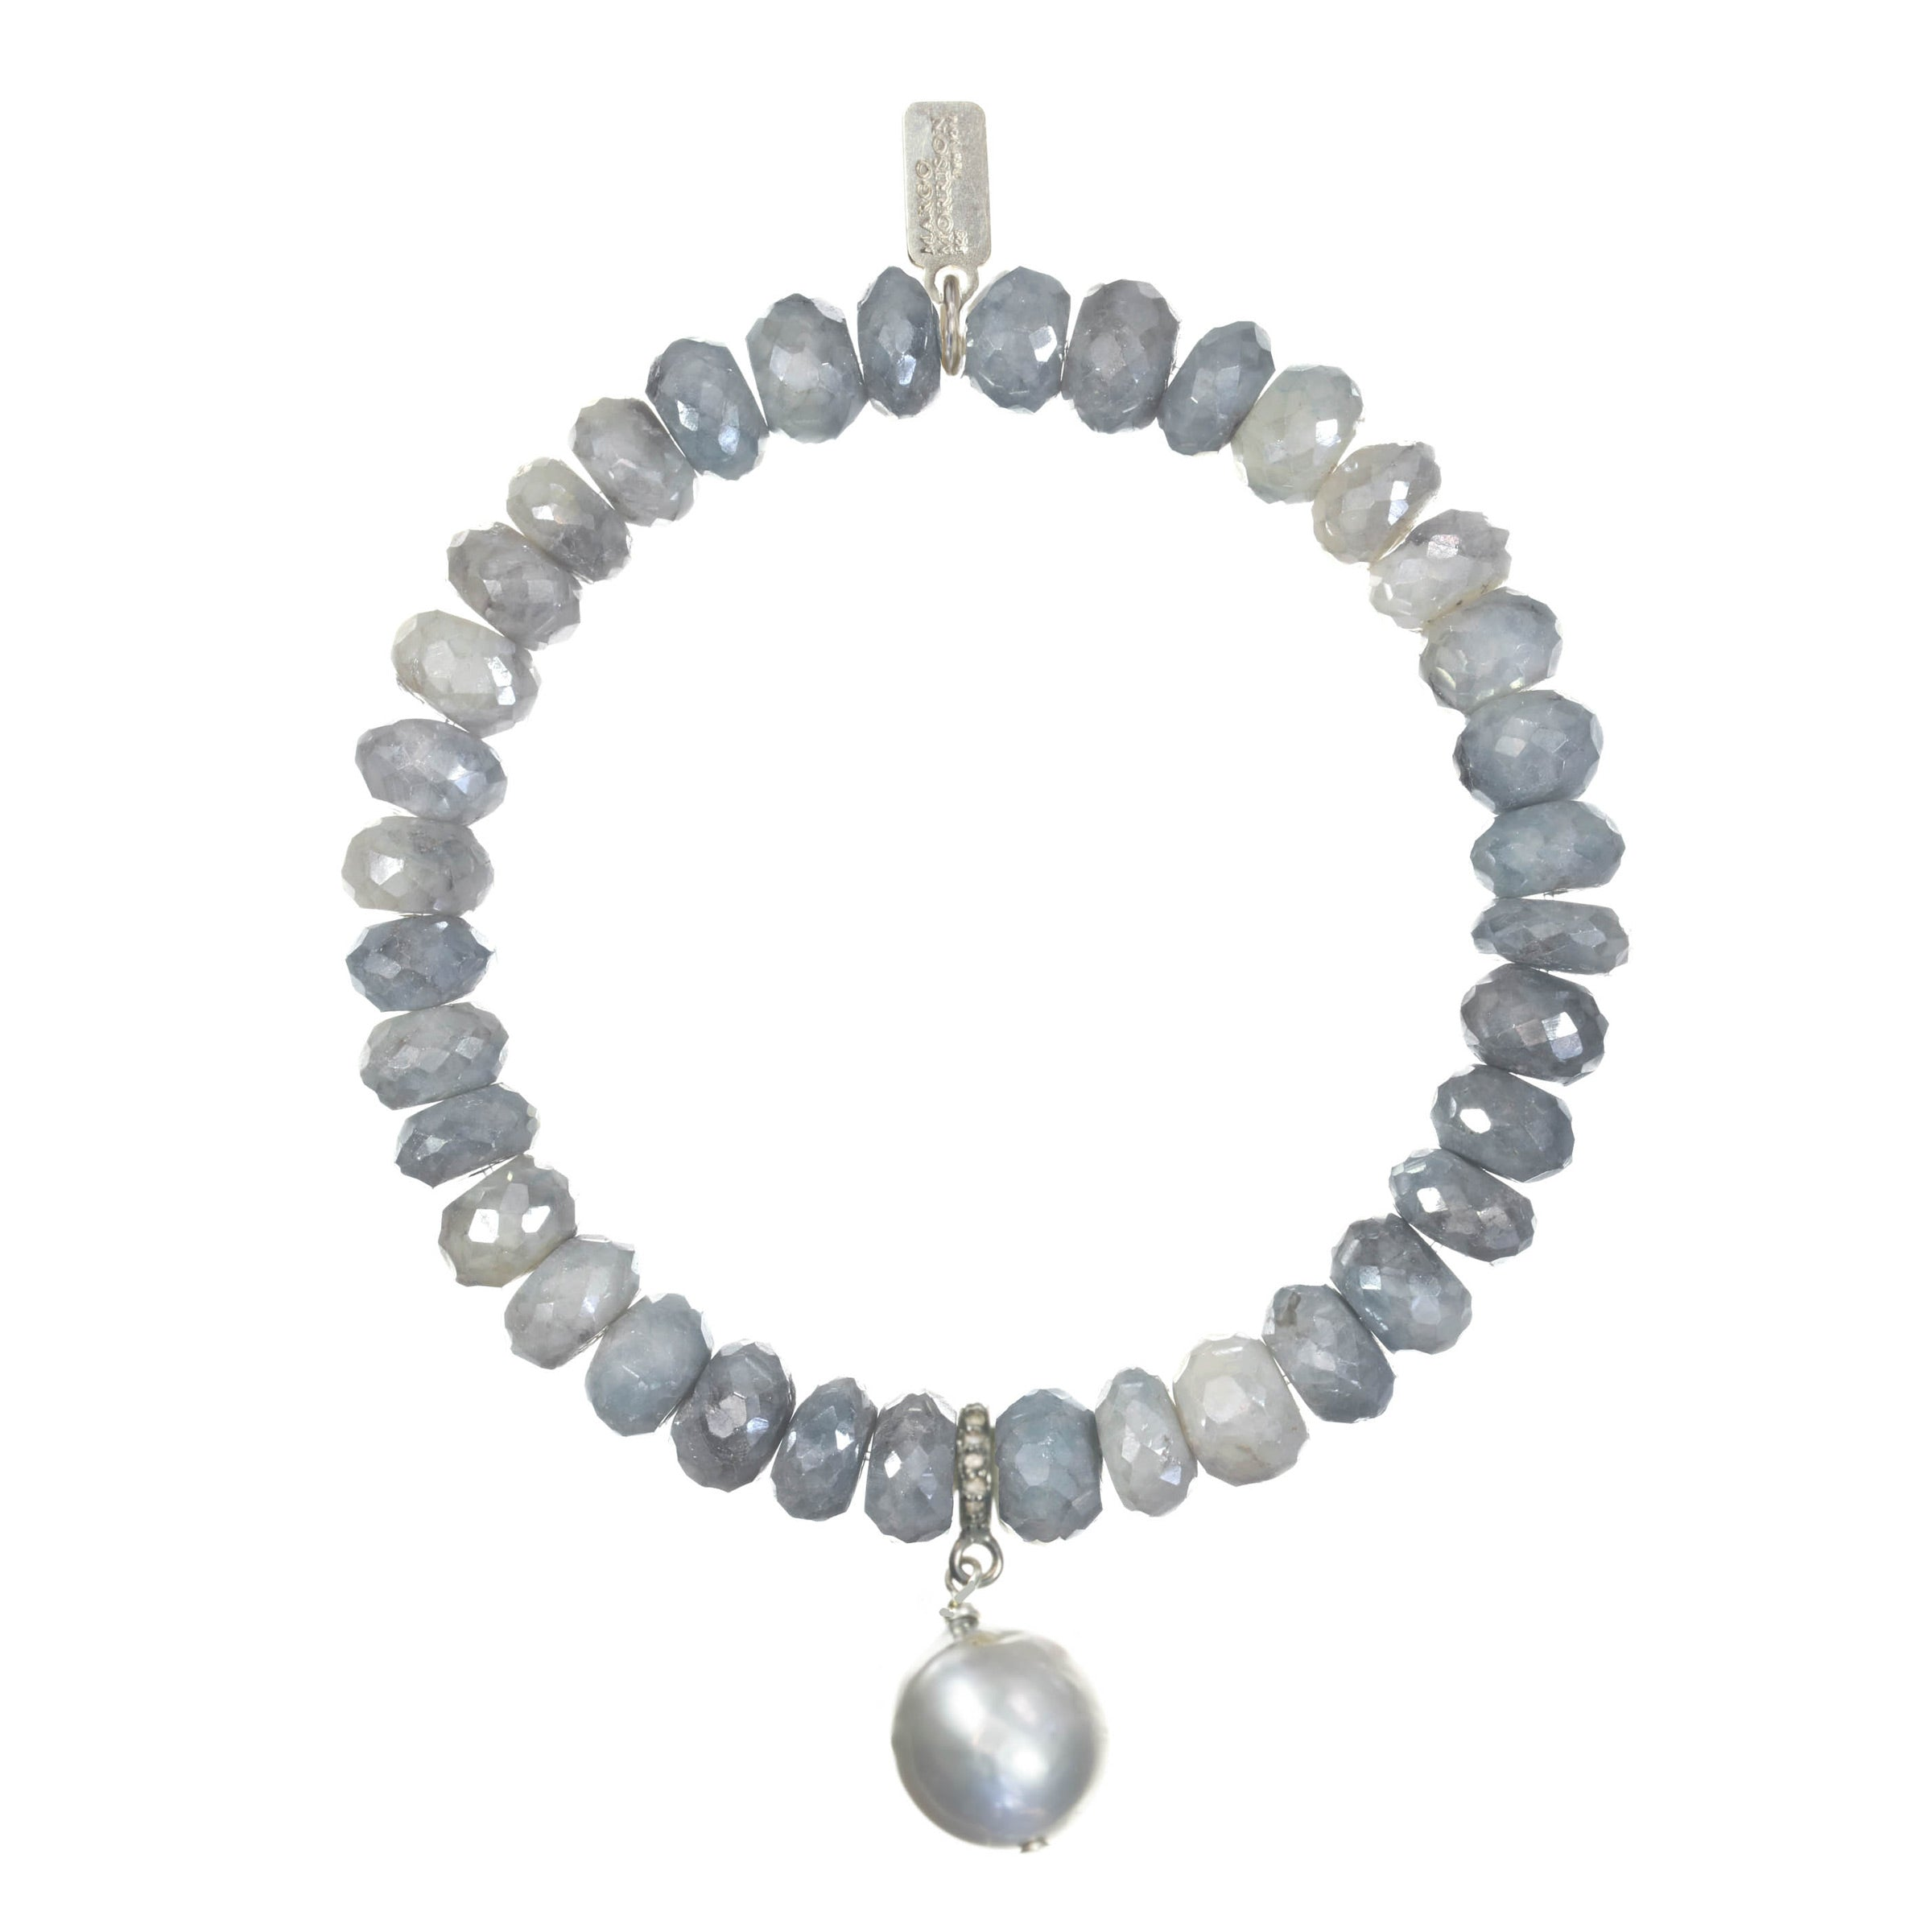 Blue/Grey Silverite and Grey Cultured Baroque Pearl Stretch Bracelet